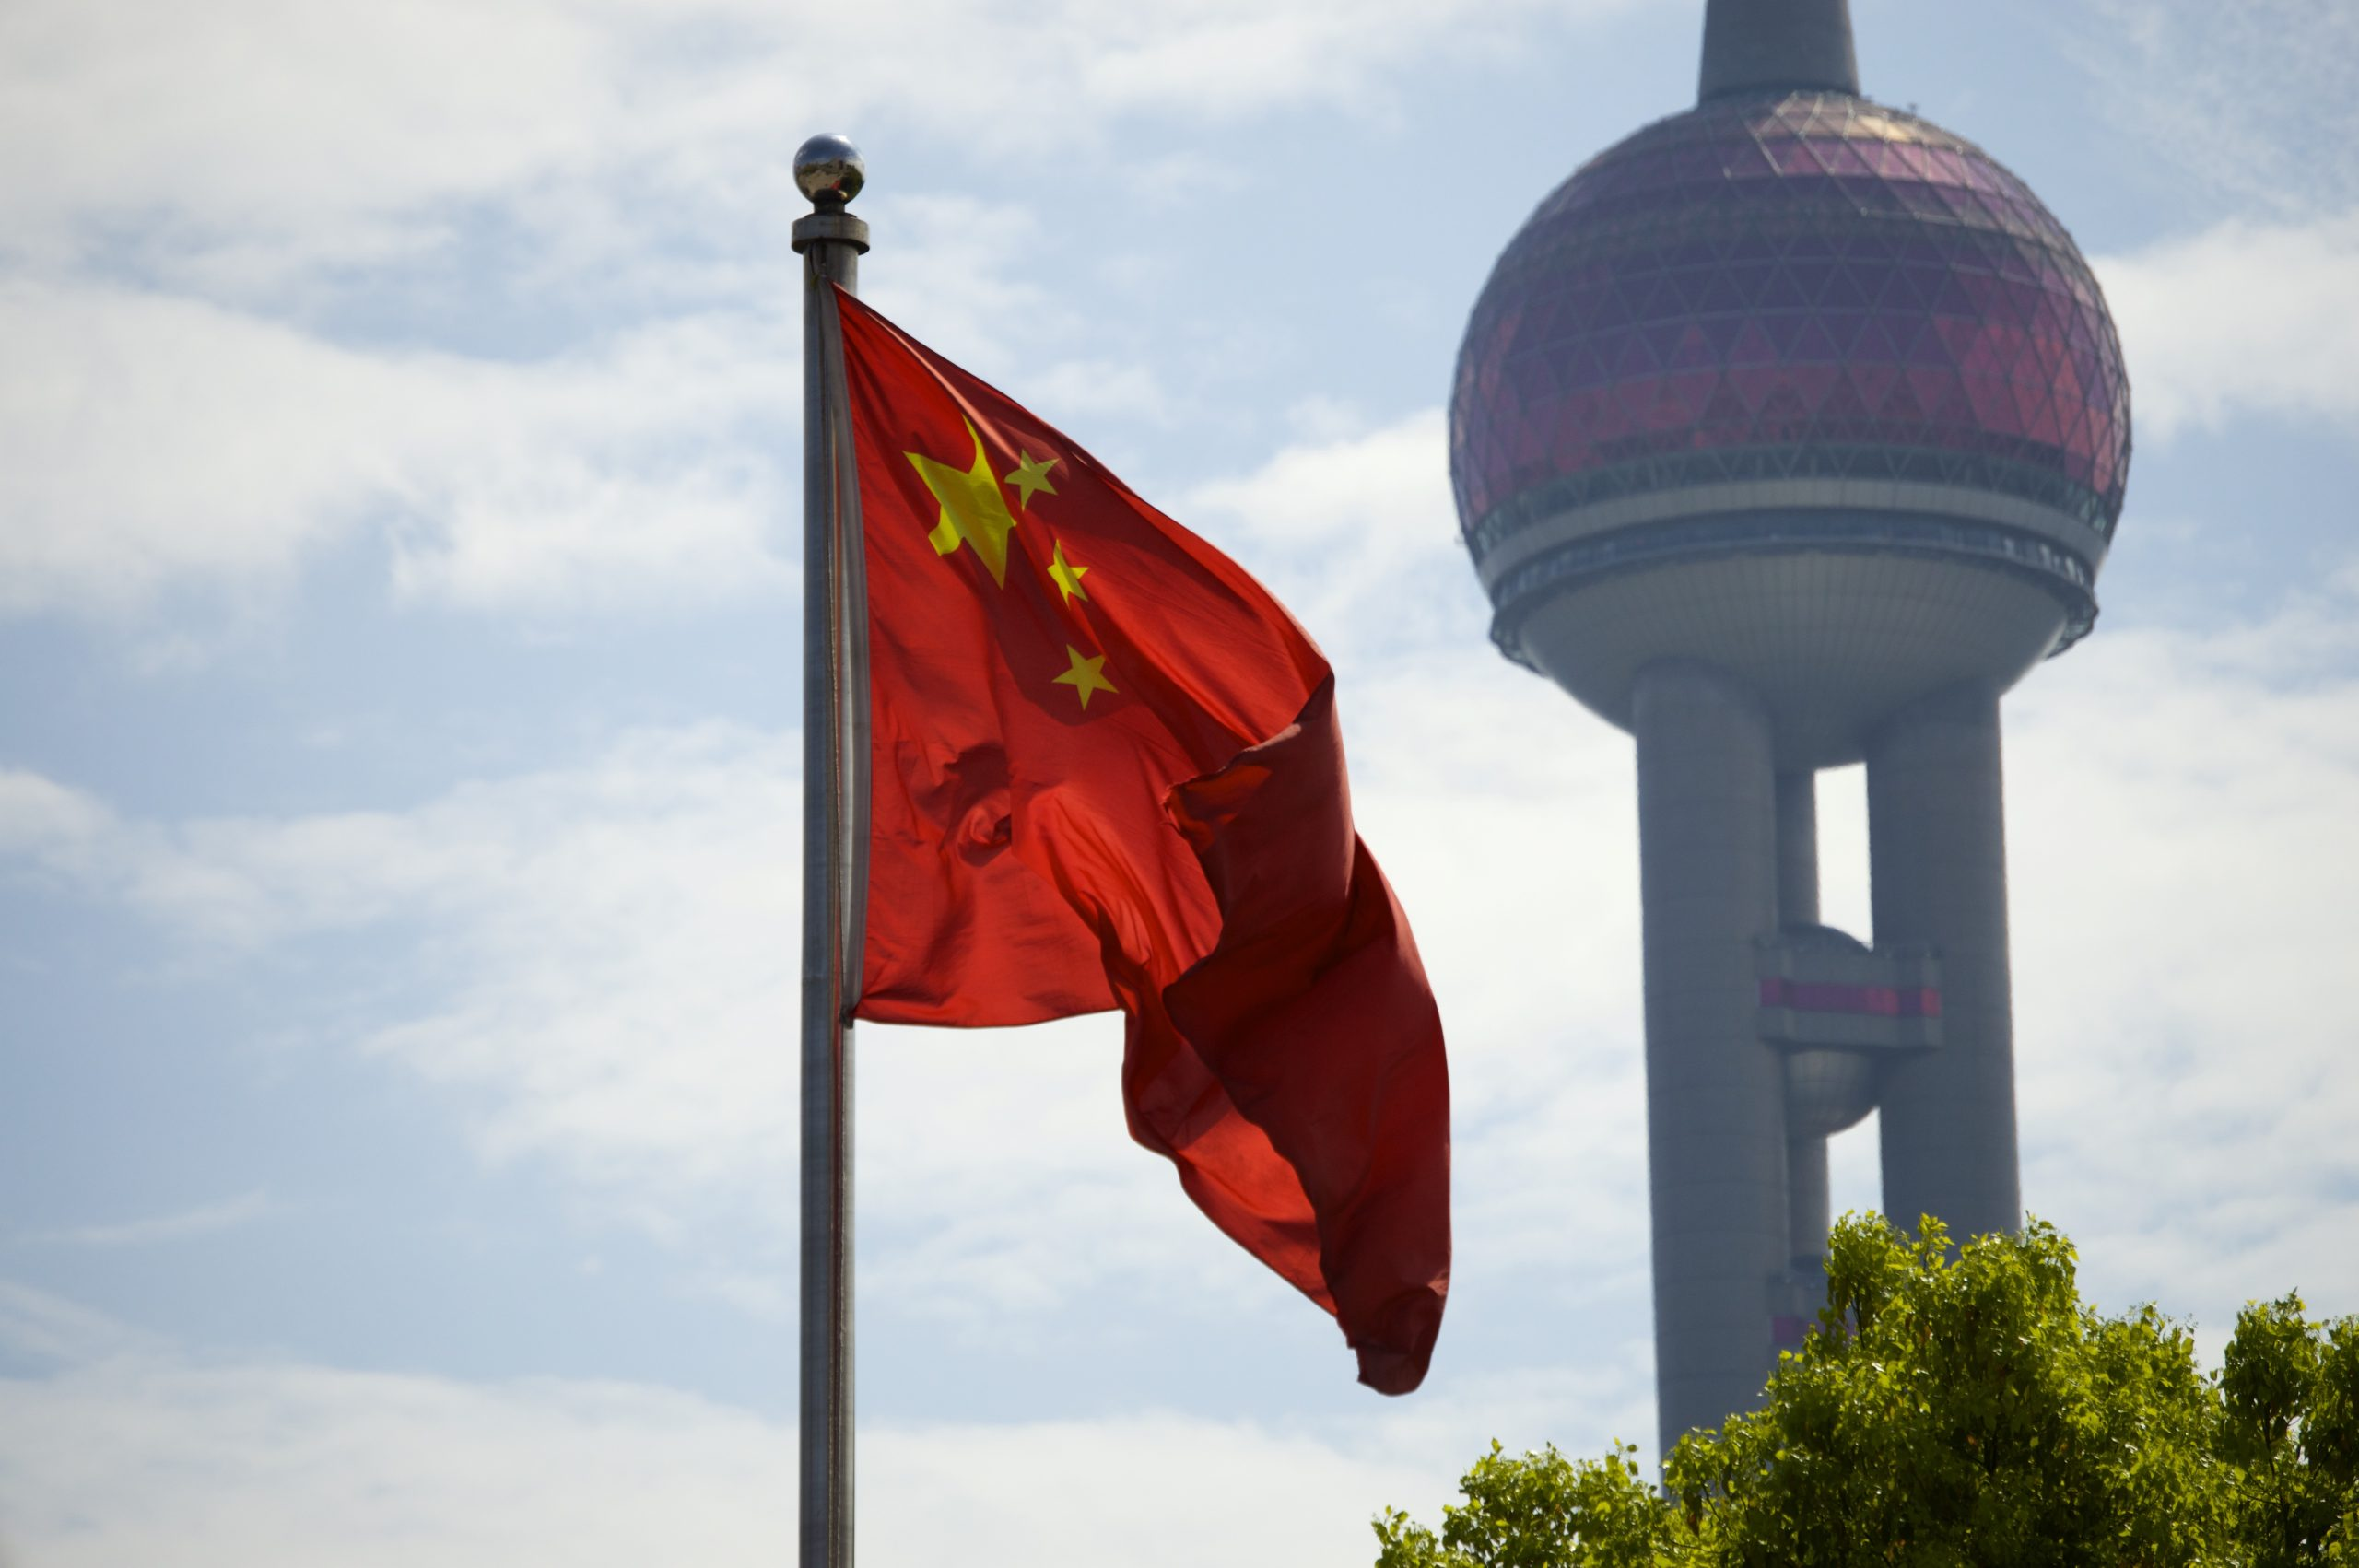 More than 20 cryptocurrency companies announced their withdrawal from China